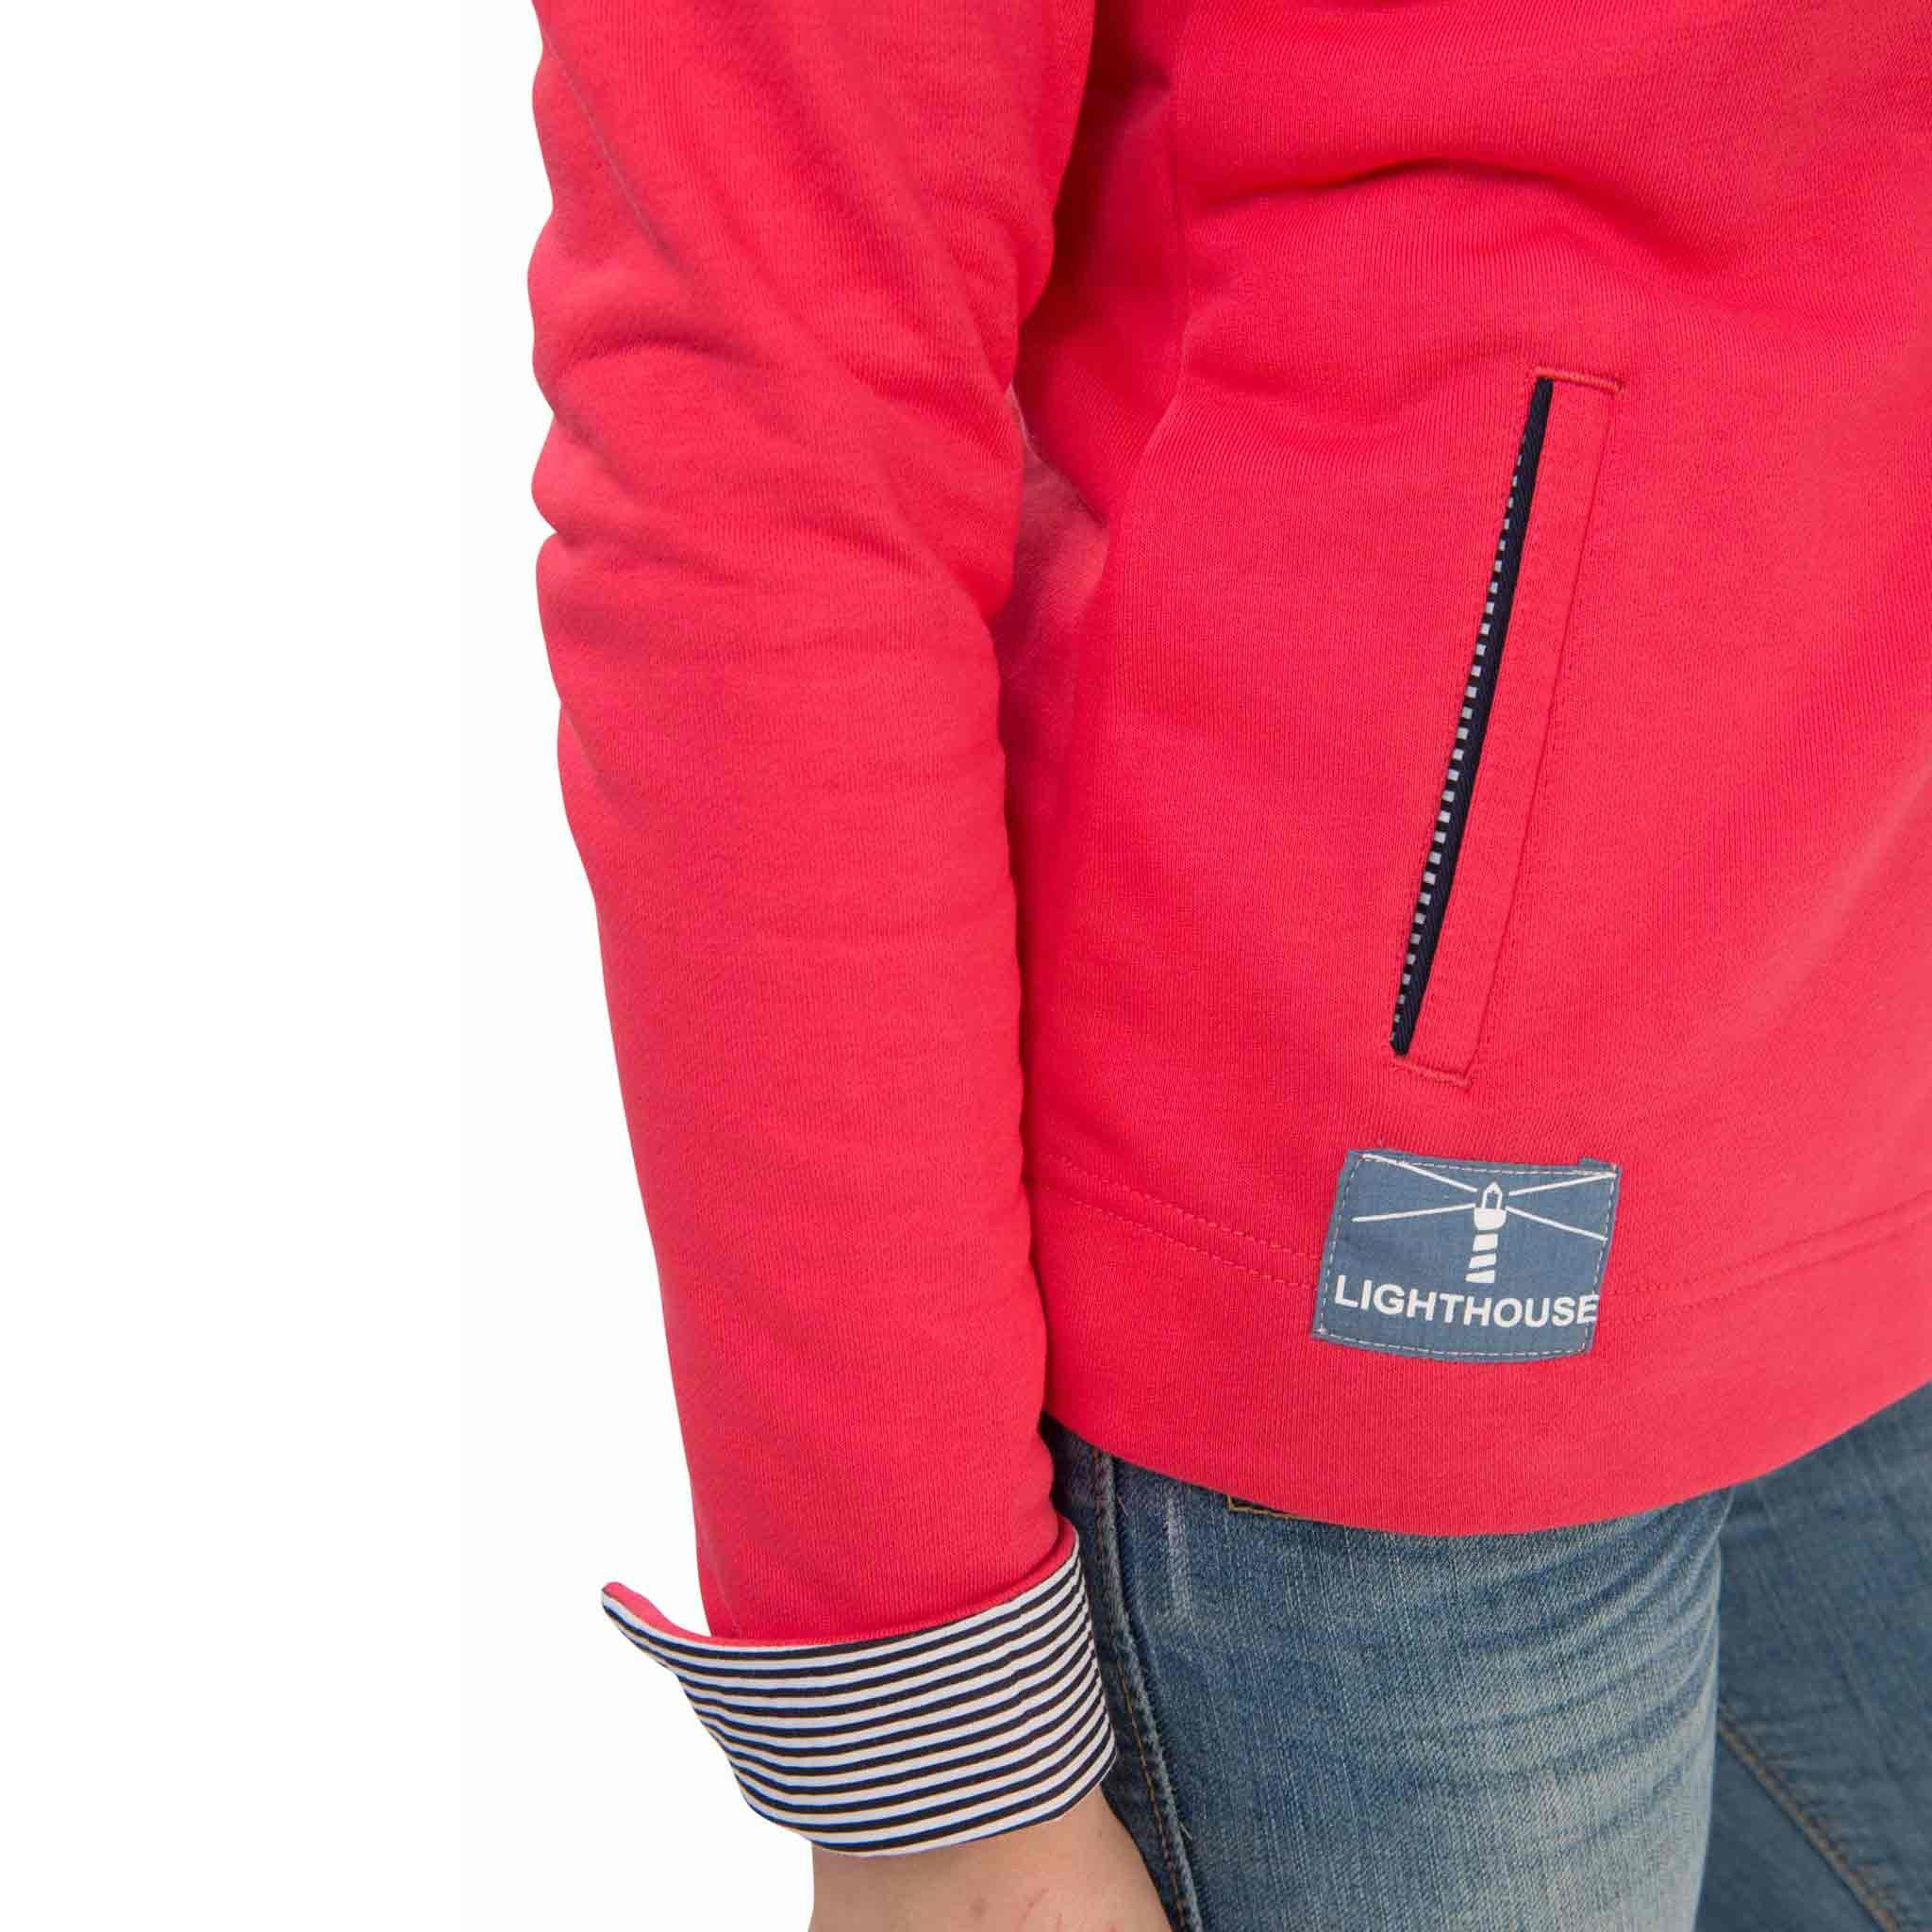 Haven Womens Half Zip Sweatshirt in Watermelon Red, Modelled Cuff View | Lighthouse